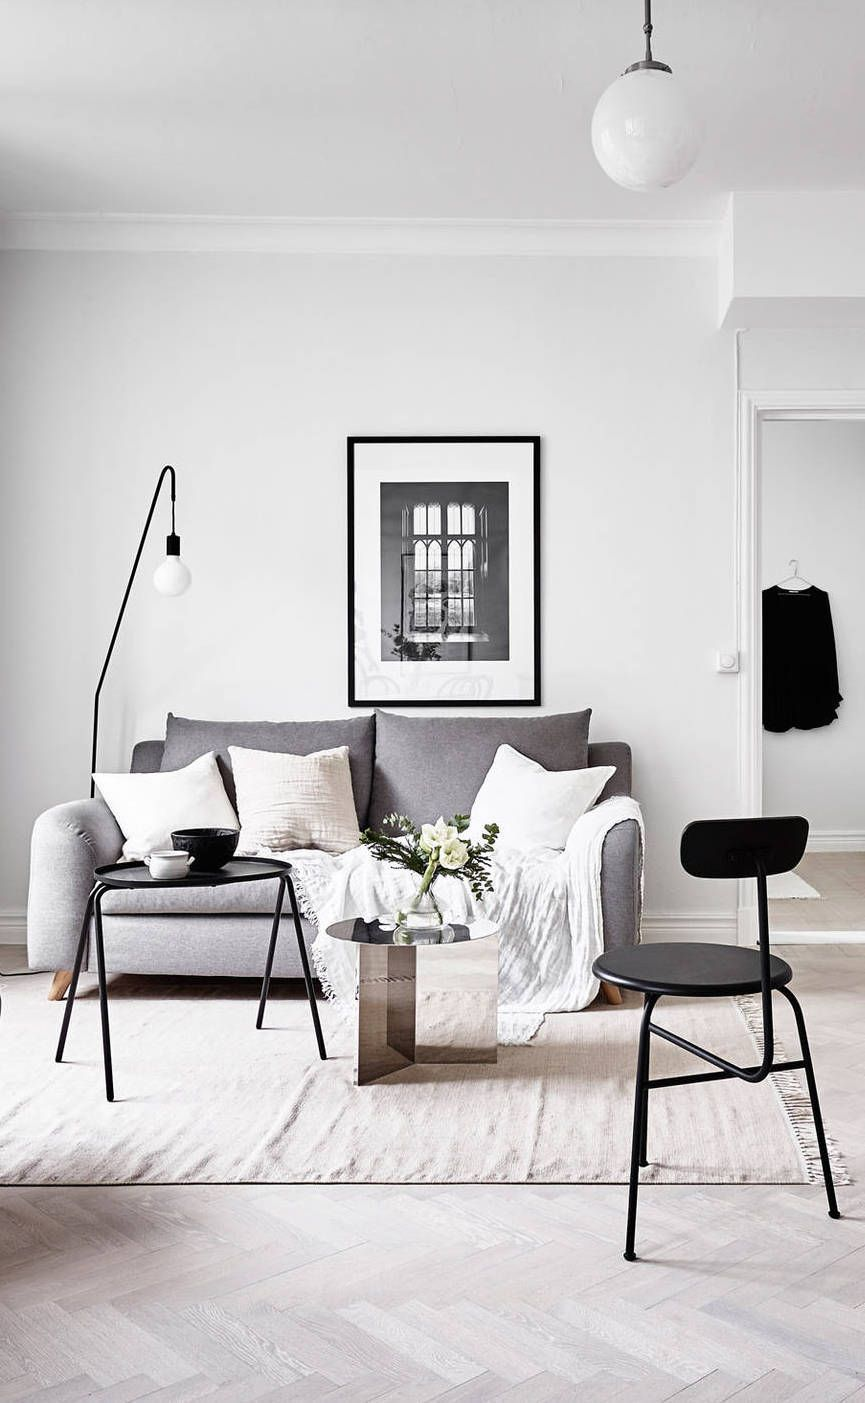 Artistic Living Room Decor: Great Artistic Black And White Modern Living Room Ideas